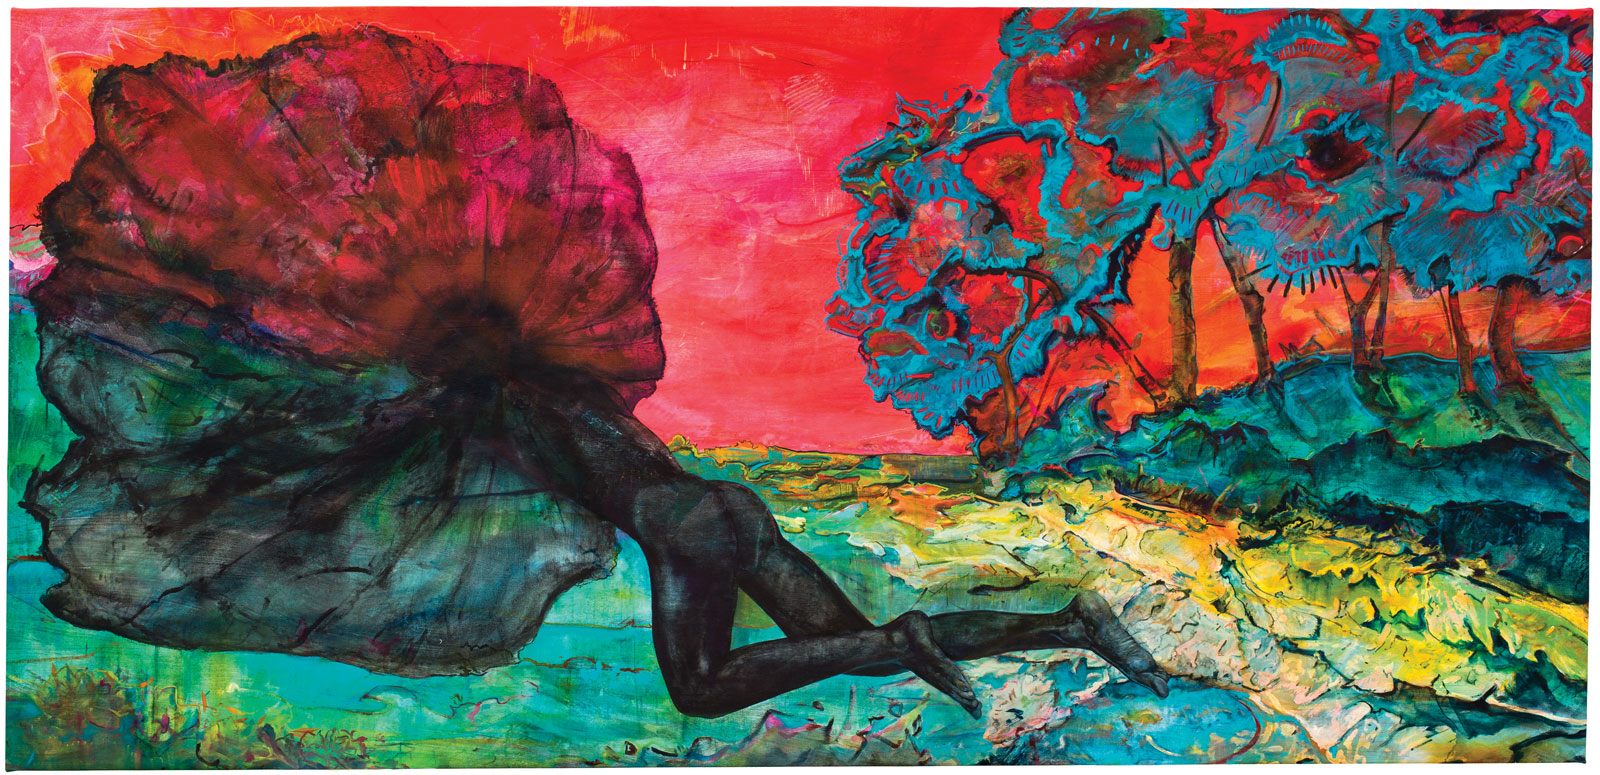 <i>Aubade</i> I (2015), acrylic, blood, ink, chalk, and oil on canvas, 54˝ × 120˝. Collection of Allegra LaViola.